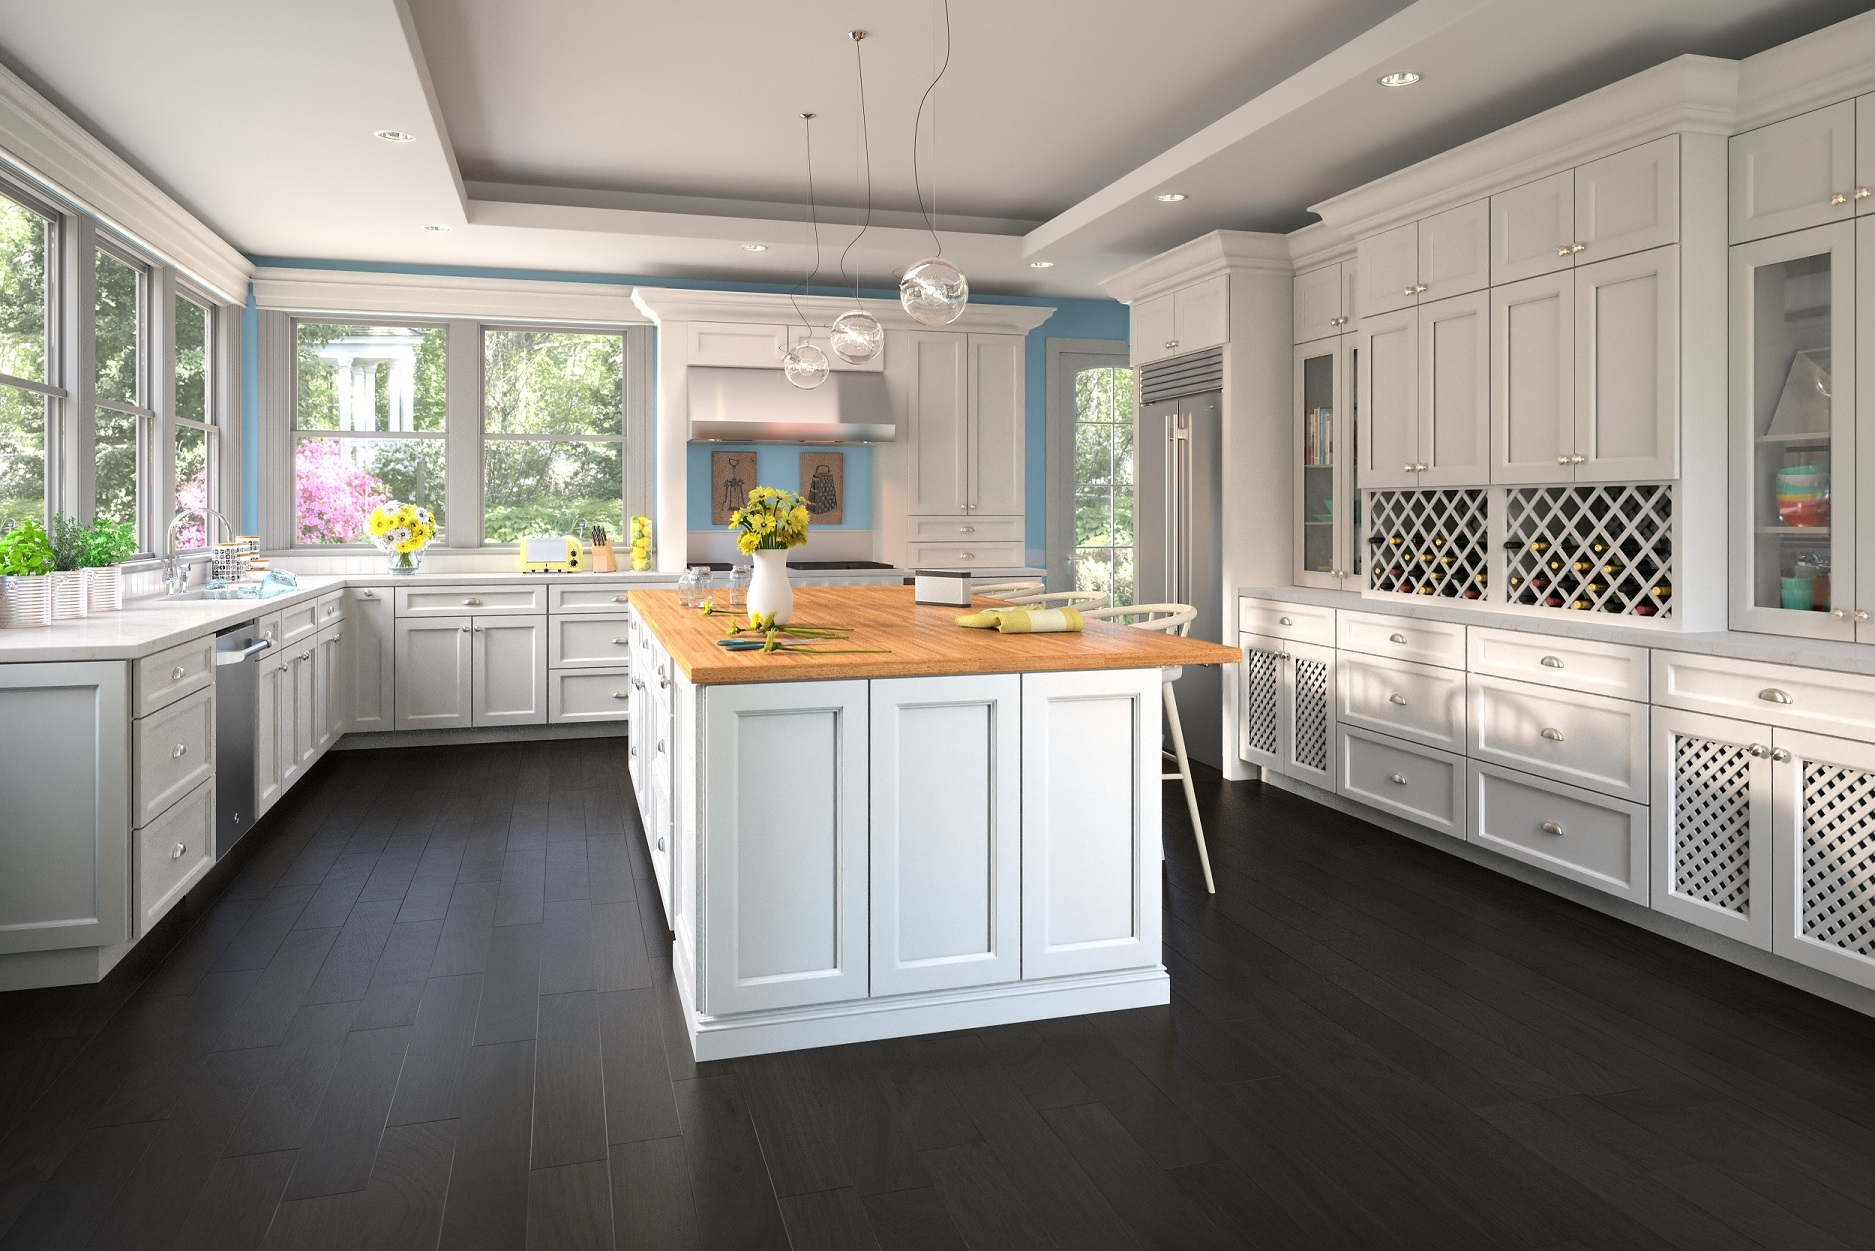 Kitchen Cabinets Not Assembledready to assemble kitchen cabinets kitchen cabinets